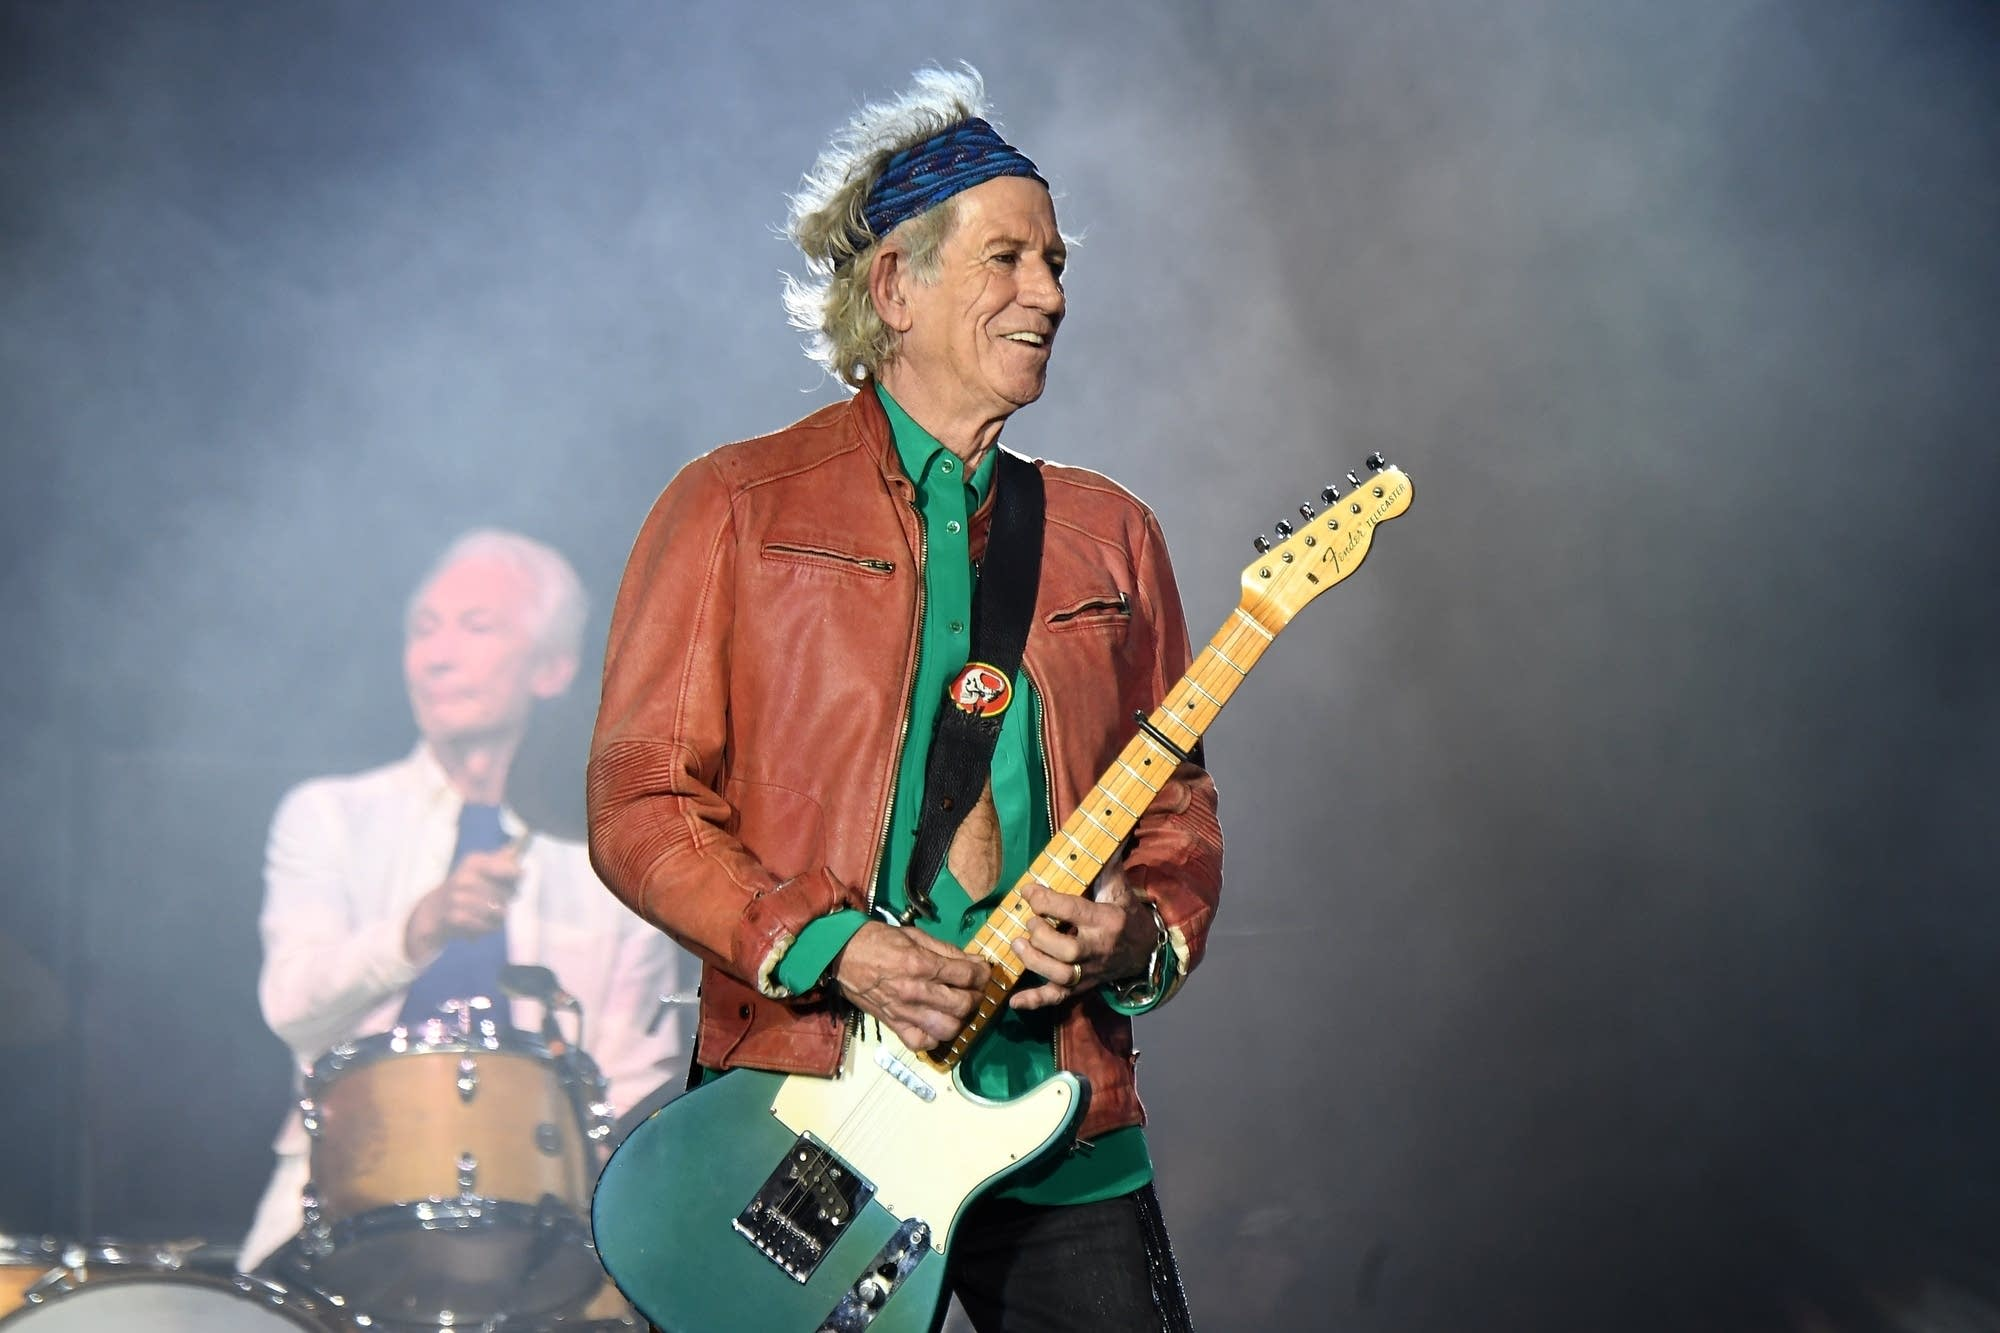 Keith Richards smiling onstage